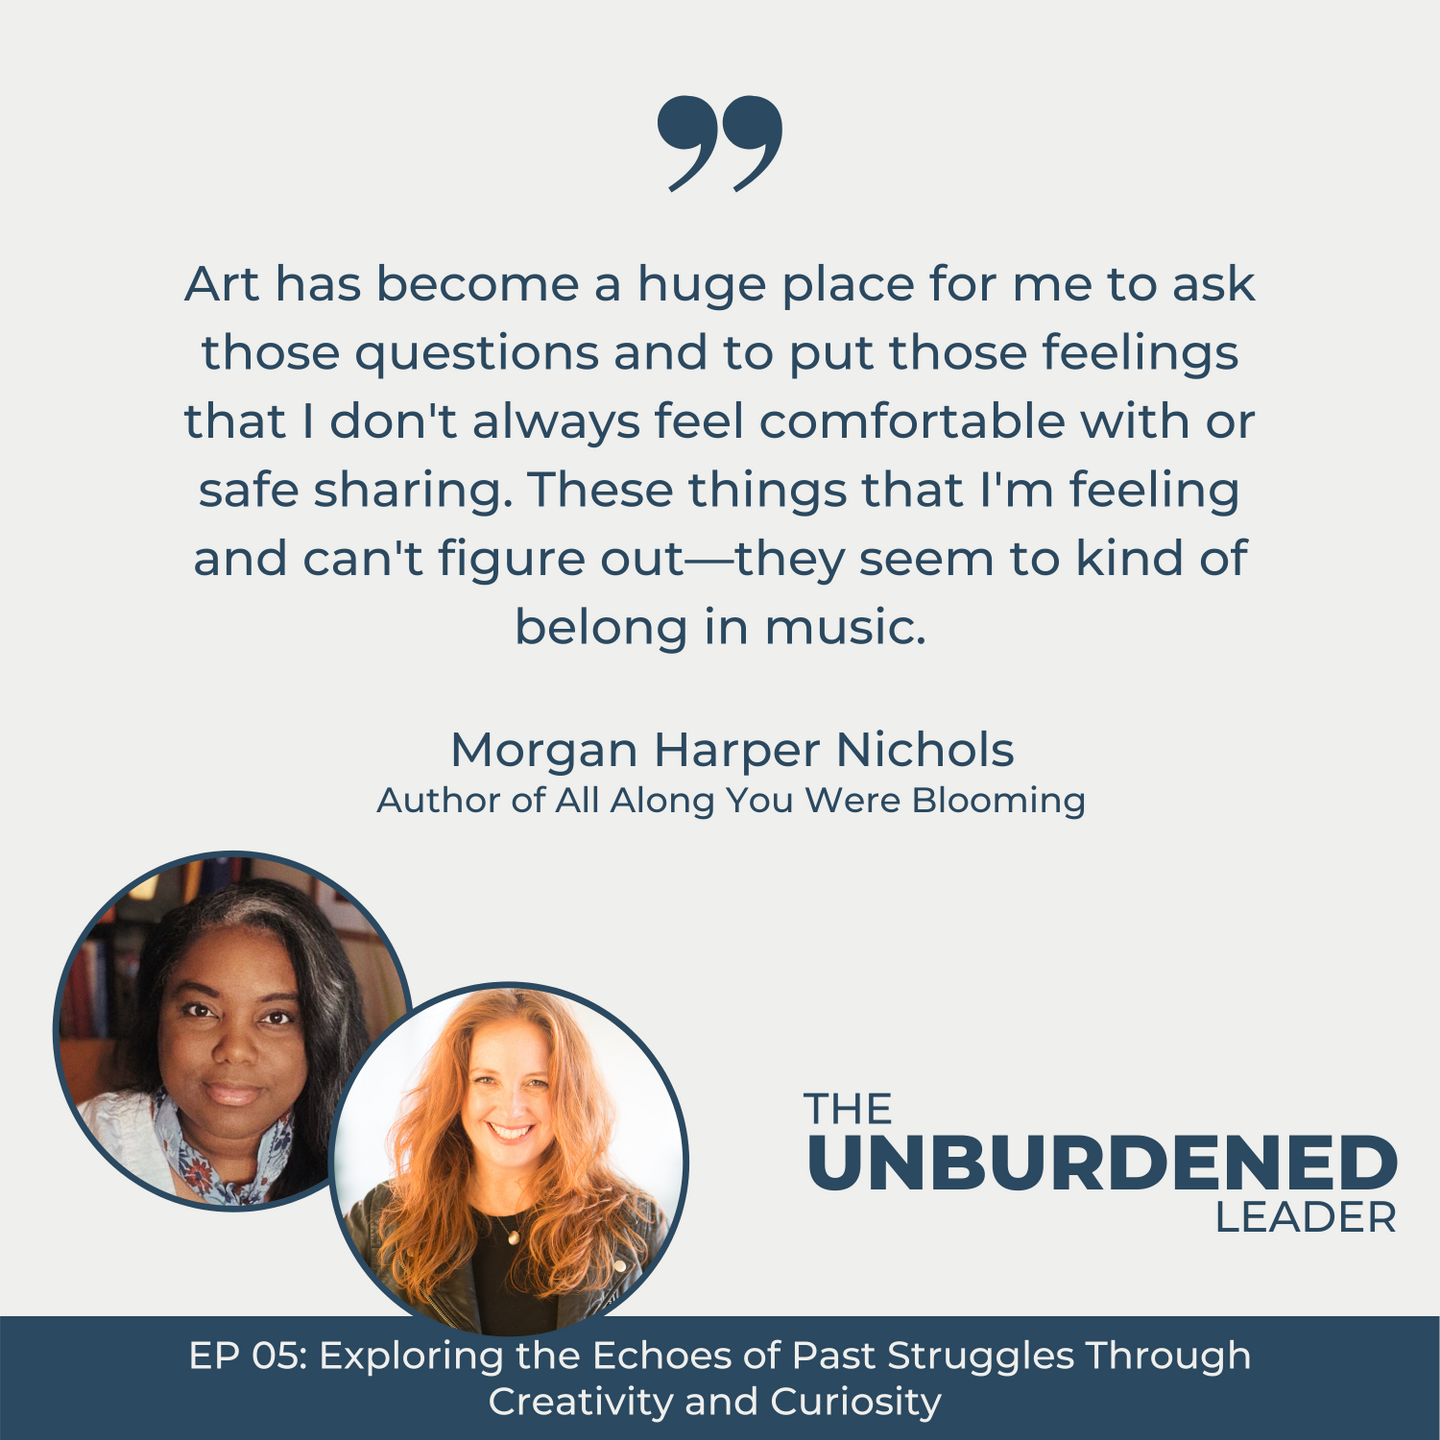 The Unburdened Leader Podcast featuring Morgan Harper Nichols